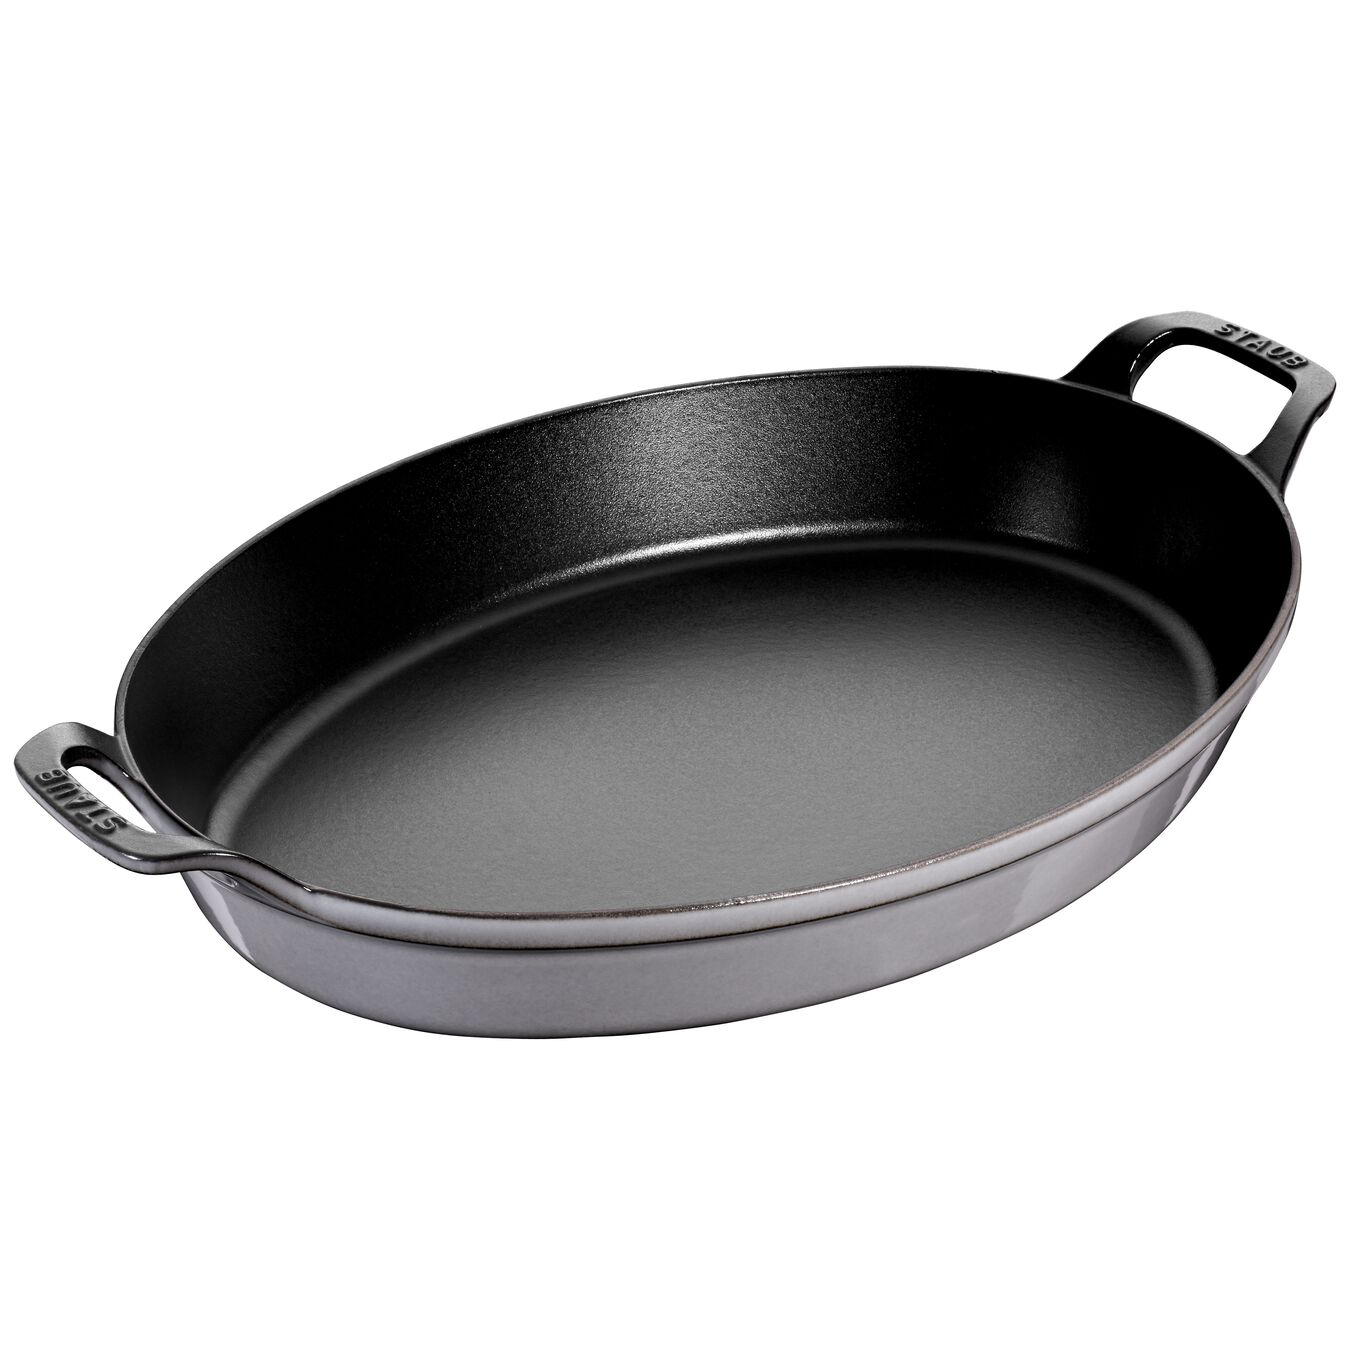 14.5-x 11.2-inch, oval, Baking Dish, graphite grey,,large 1